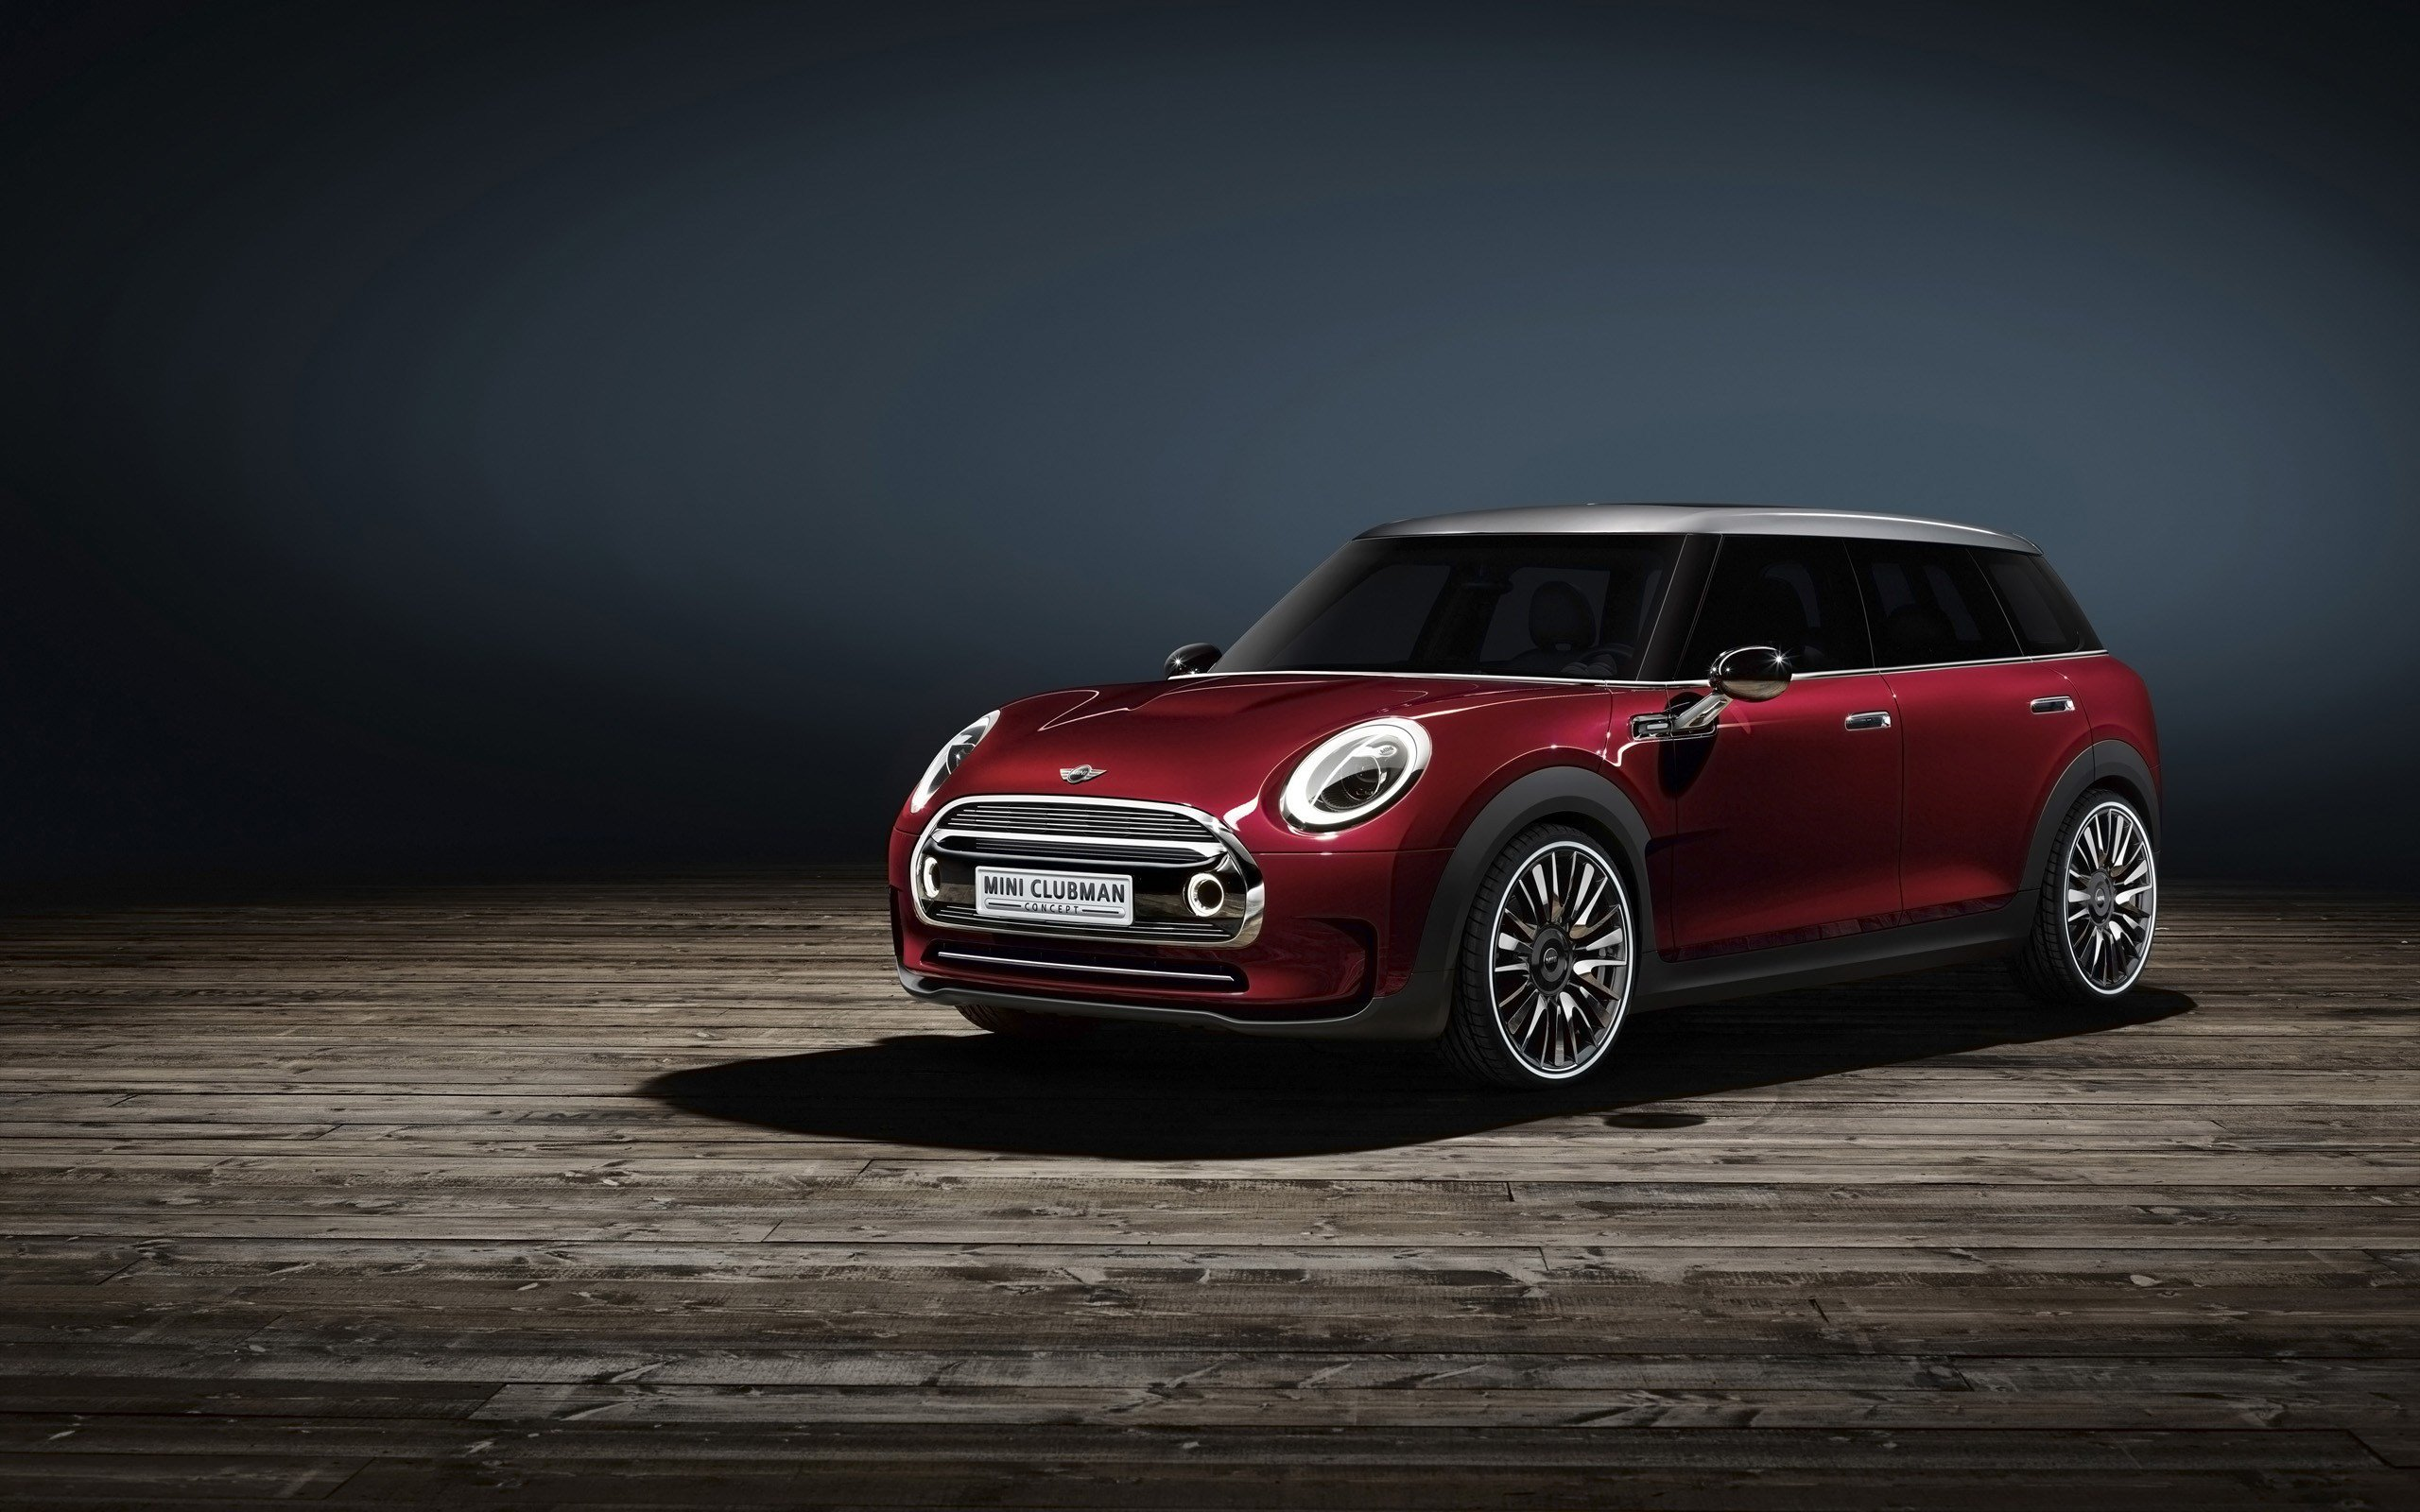 Latest 2014 Mini Clubman Concept Wallpaper Hd Car Wallpapers Free Download